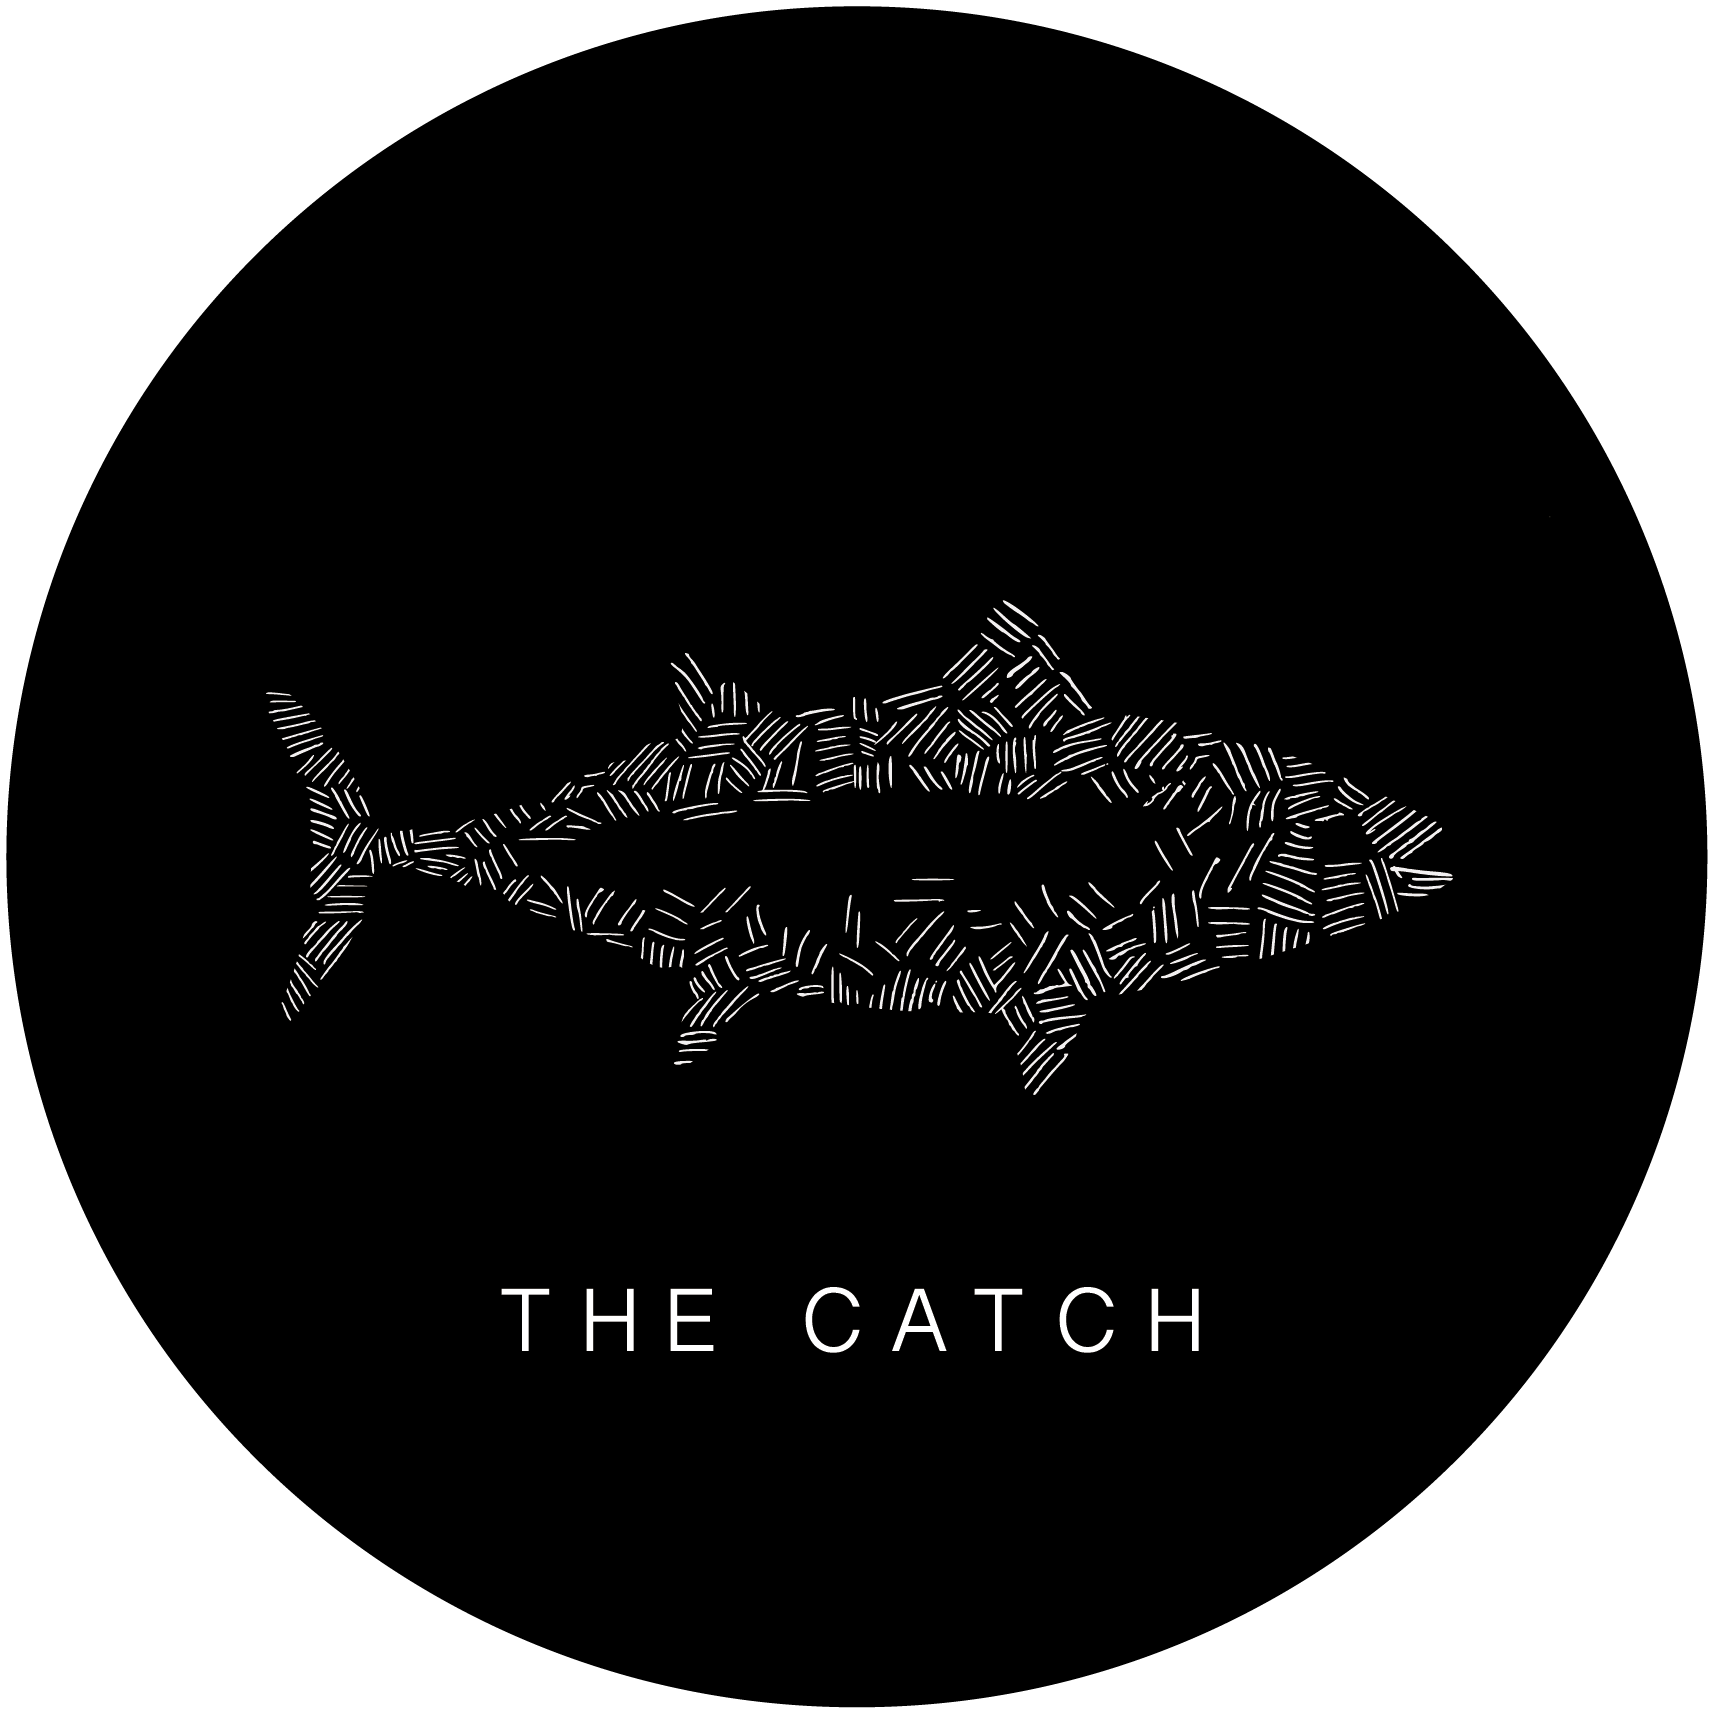 Japanese restaurant The Catch Berlin logo